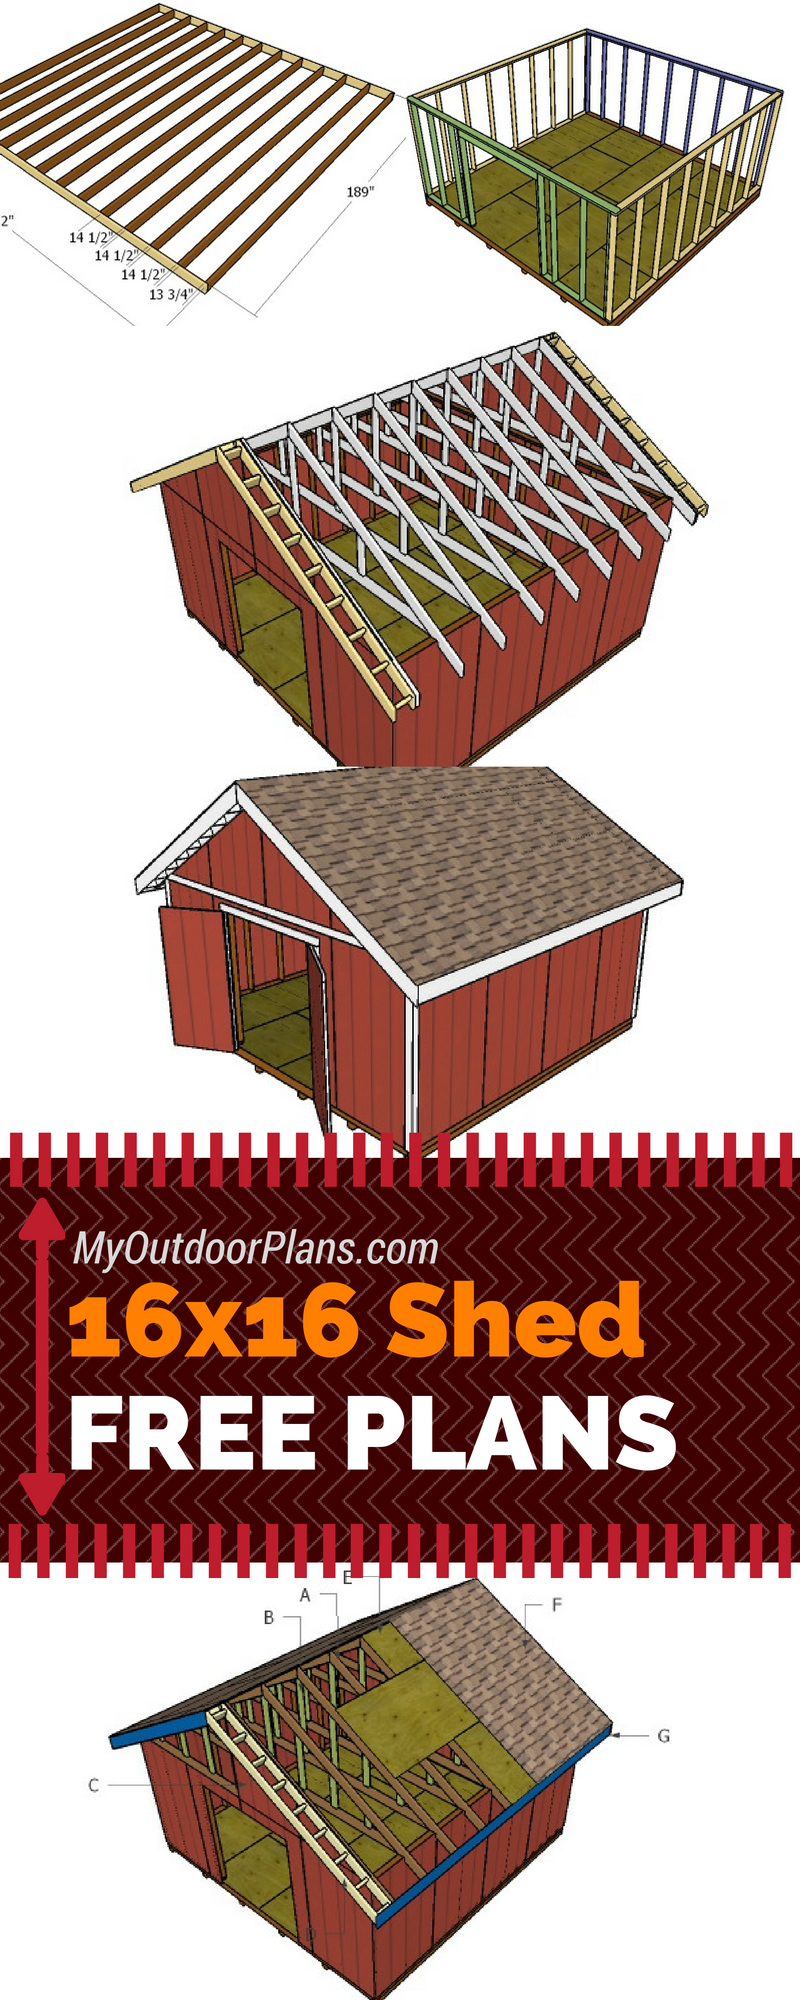 Free plans for you to learn how to build a 16x16 shed with ...